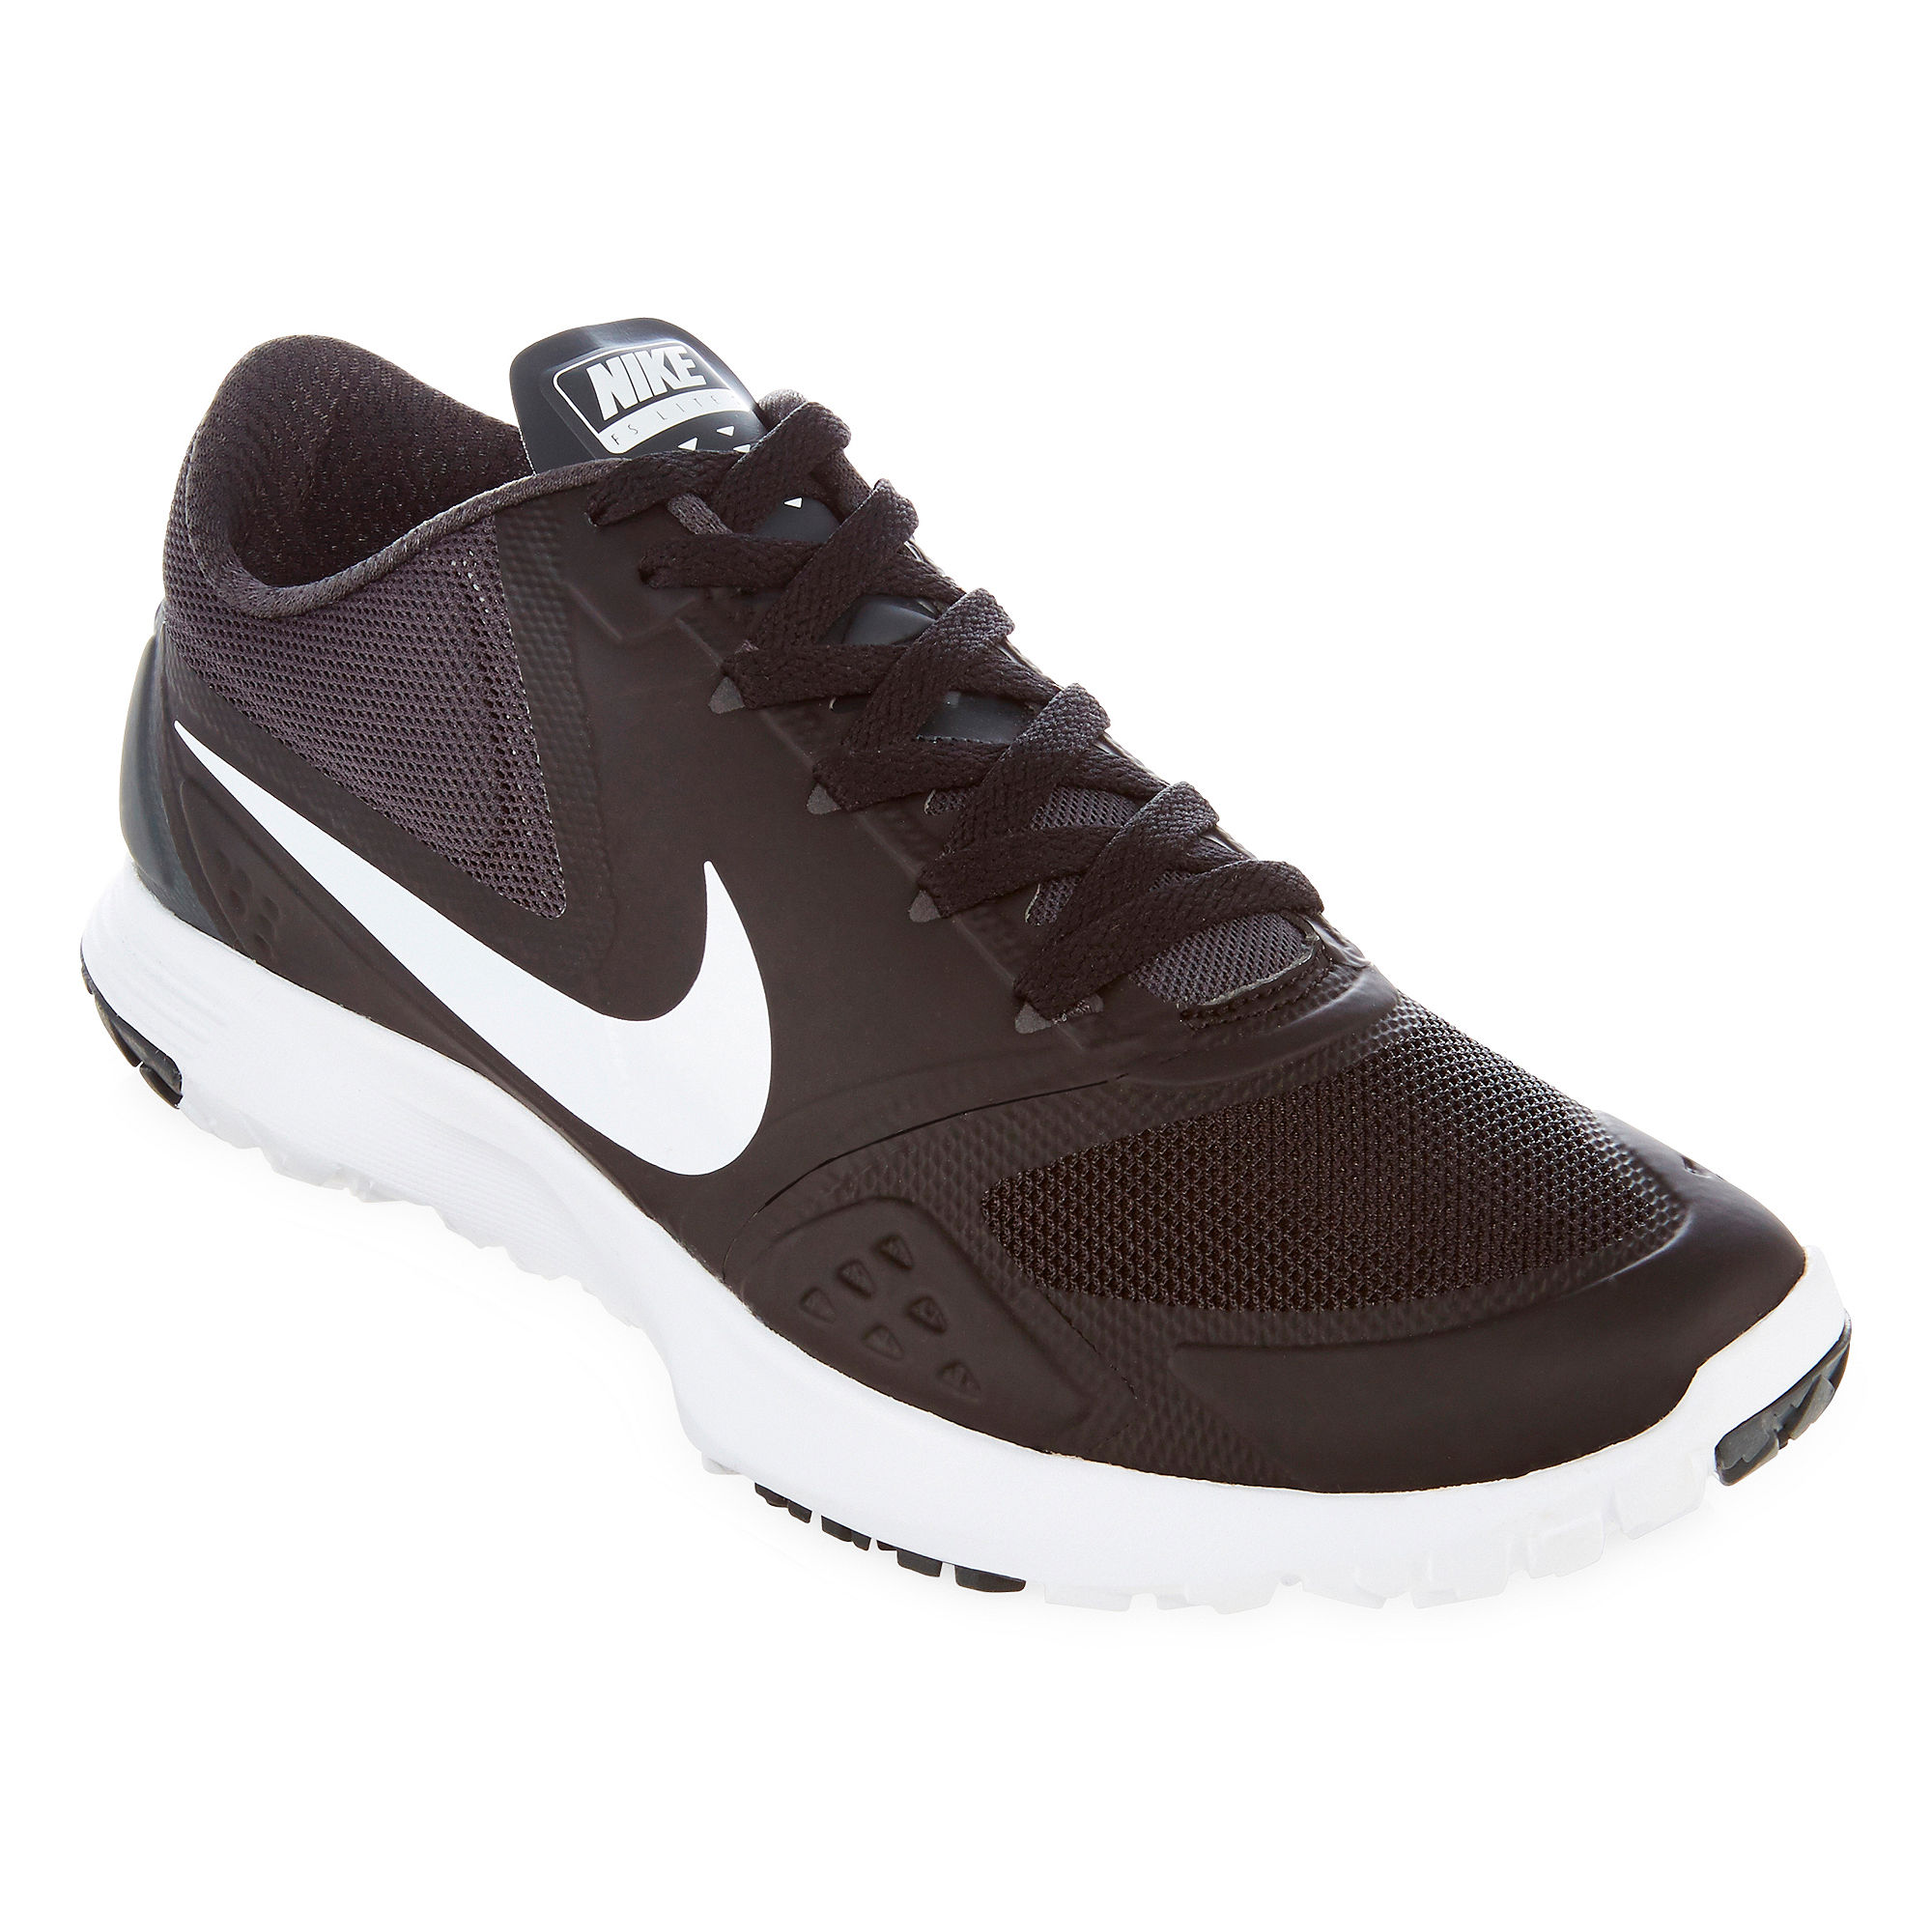 ... UPC 887232951757 product image for Nike FS Lite 2 Mens Training Shoes |  upcitemdb.com ...